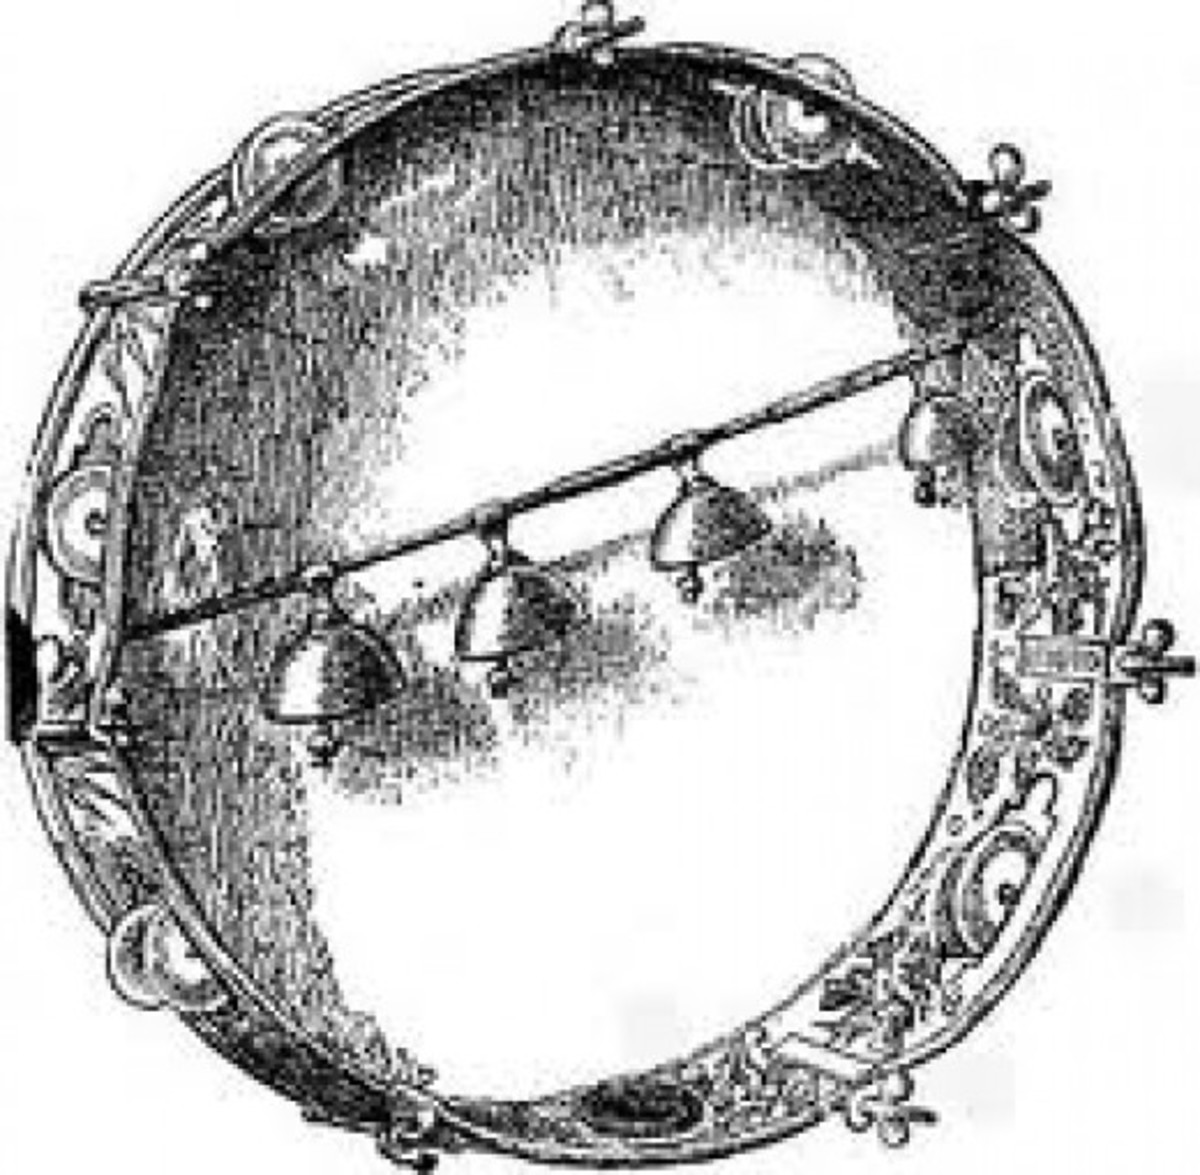 Drums too came in all sizes and at different times were referred to as taborets, tambourines, drums or loud drums.